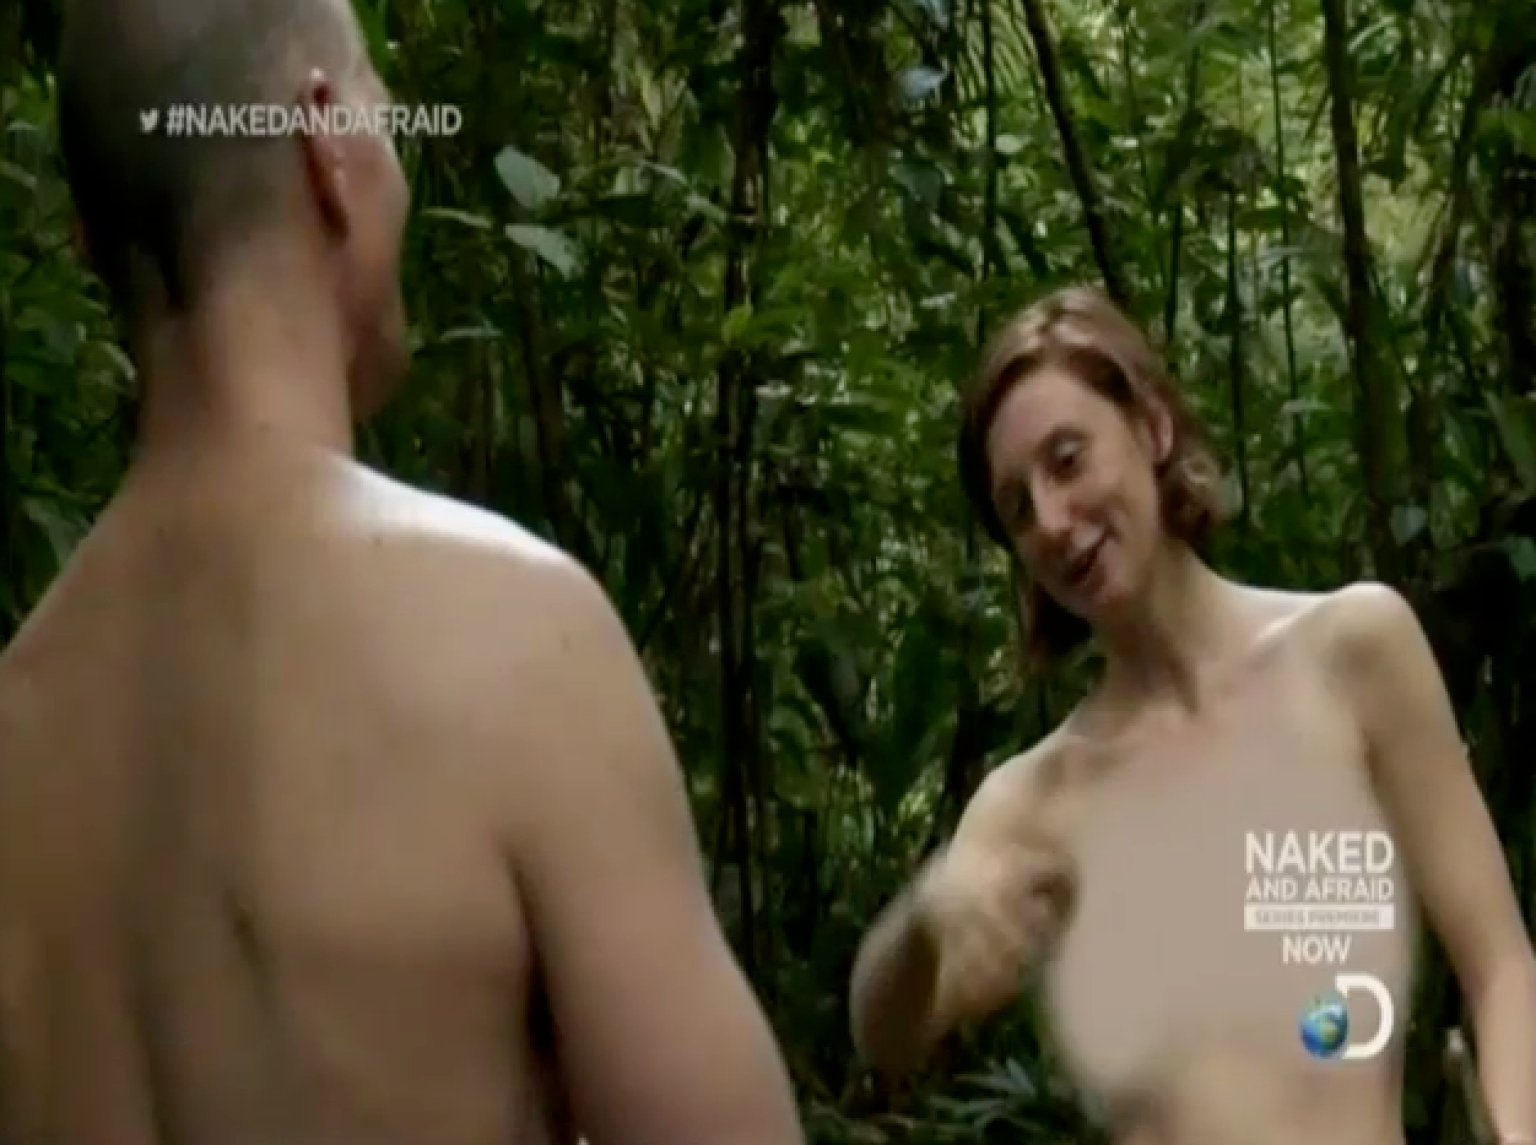 Naked and afraid nude pictures